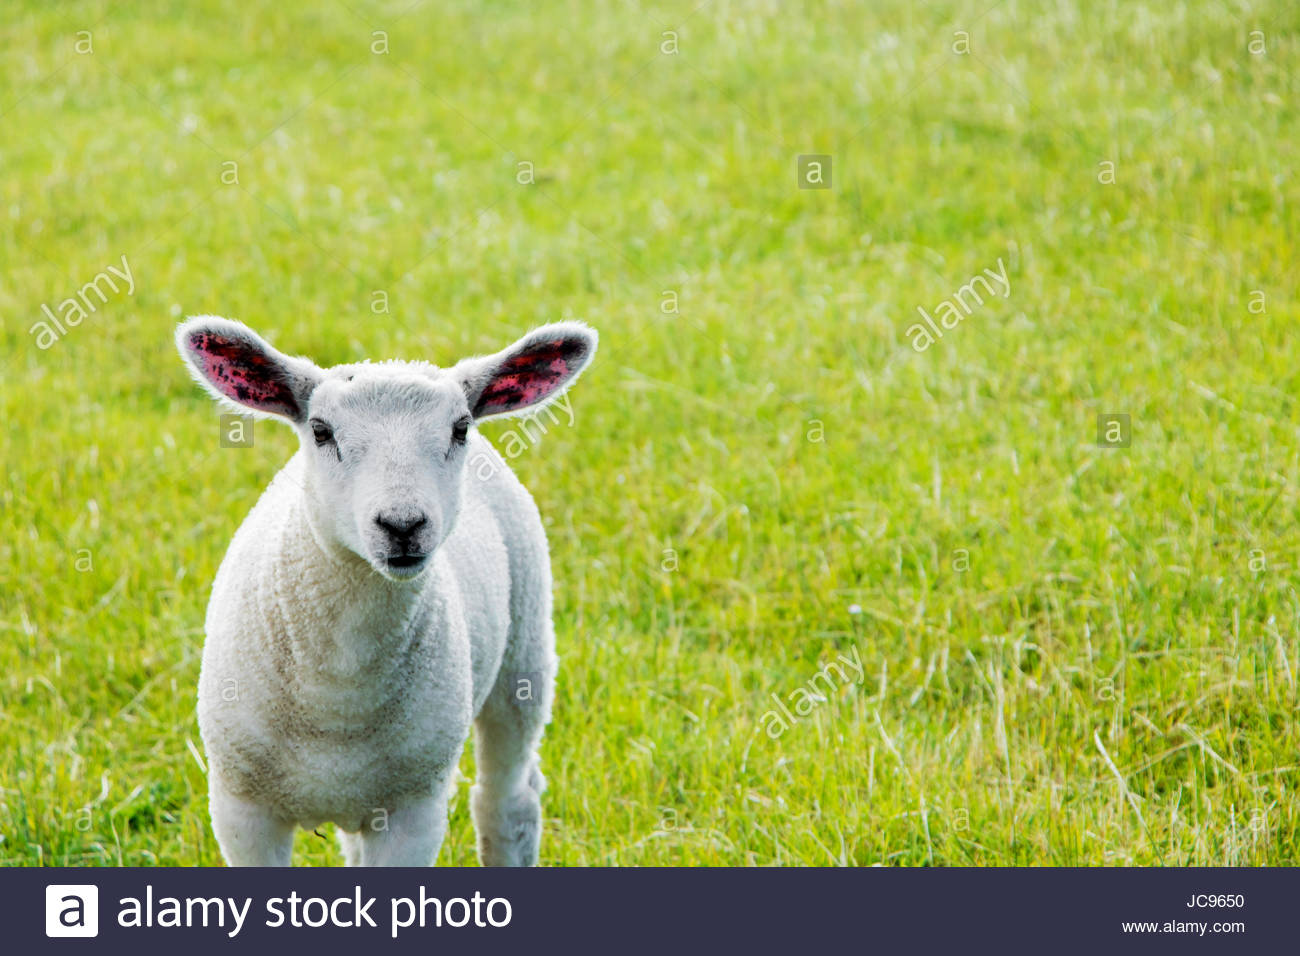 Baby sheep lamb puppy sheep wooly sheep fluffy cute portrait northern germany dithmarschen common land sheep texel - Stock Image